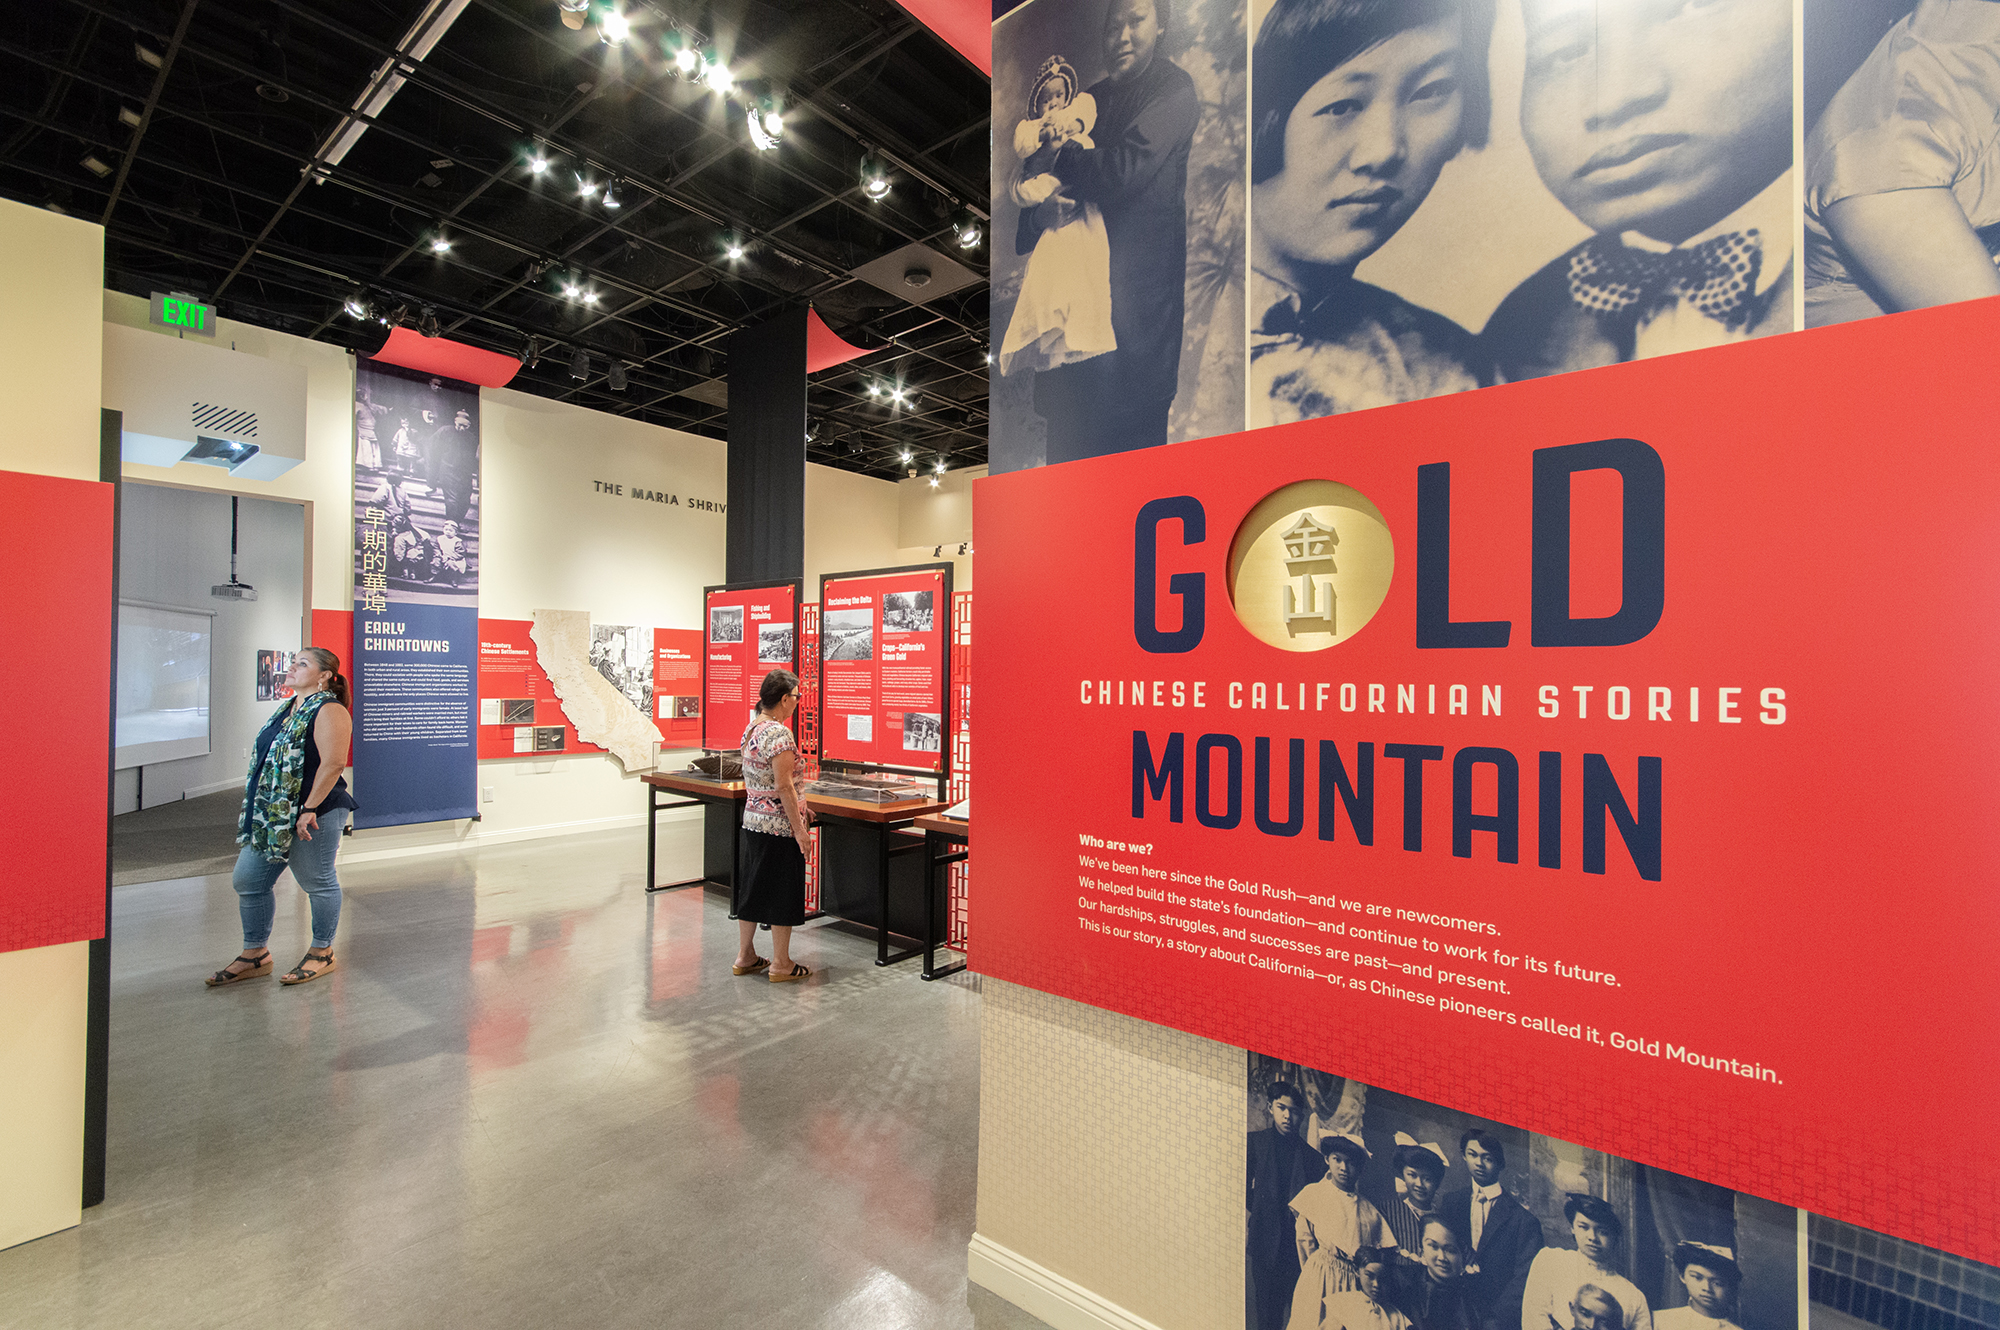 Gold Mountain: Chinese Californian Stories